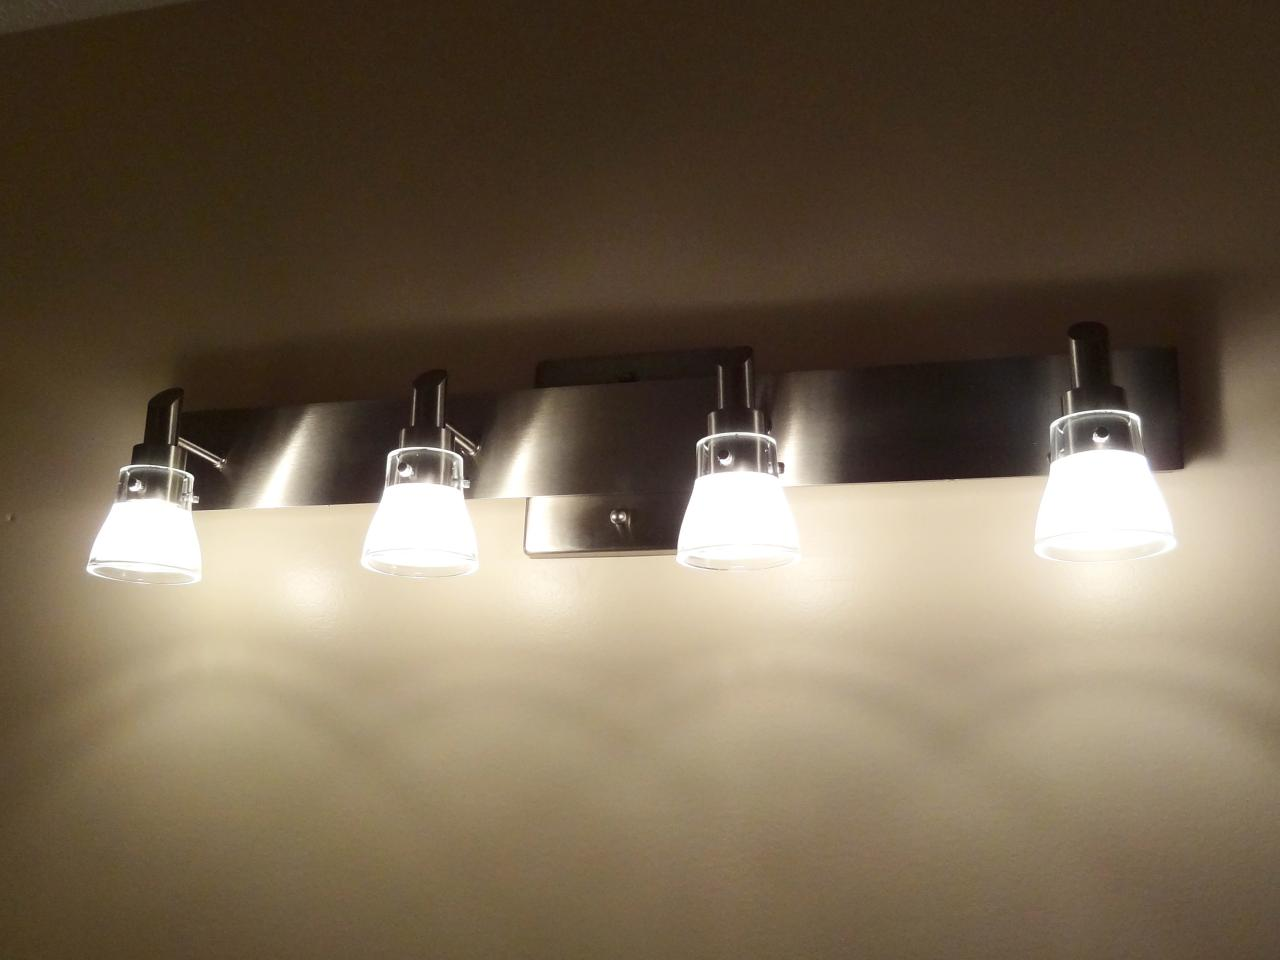 No 7 Light Mirror Bulb